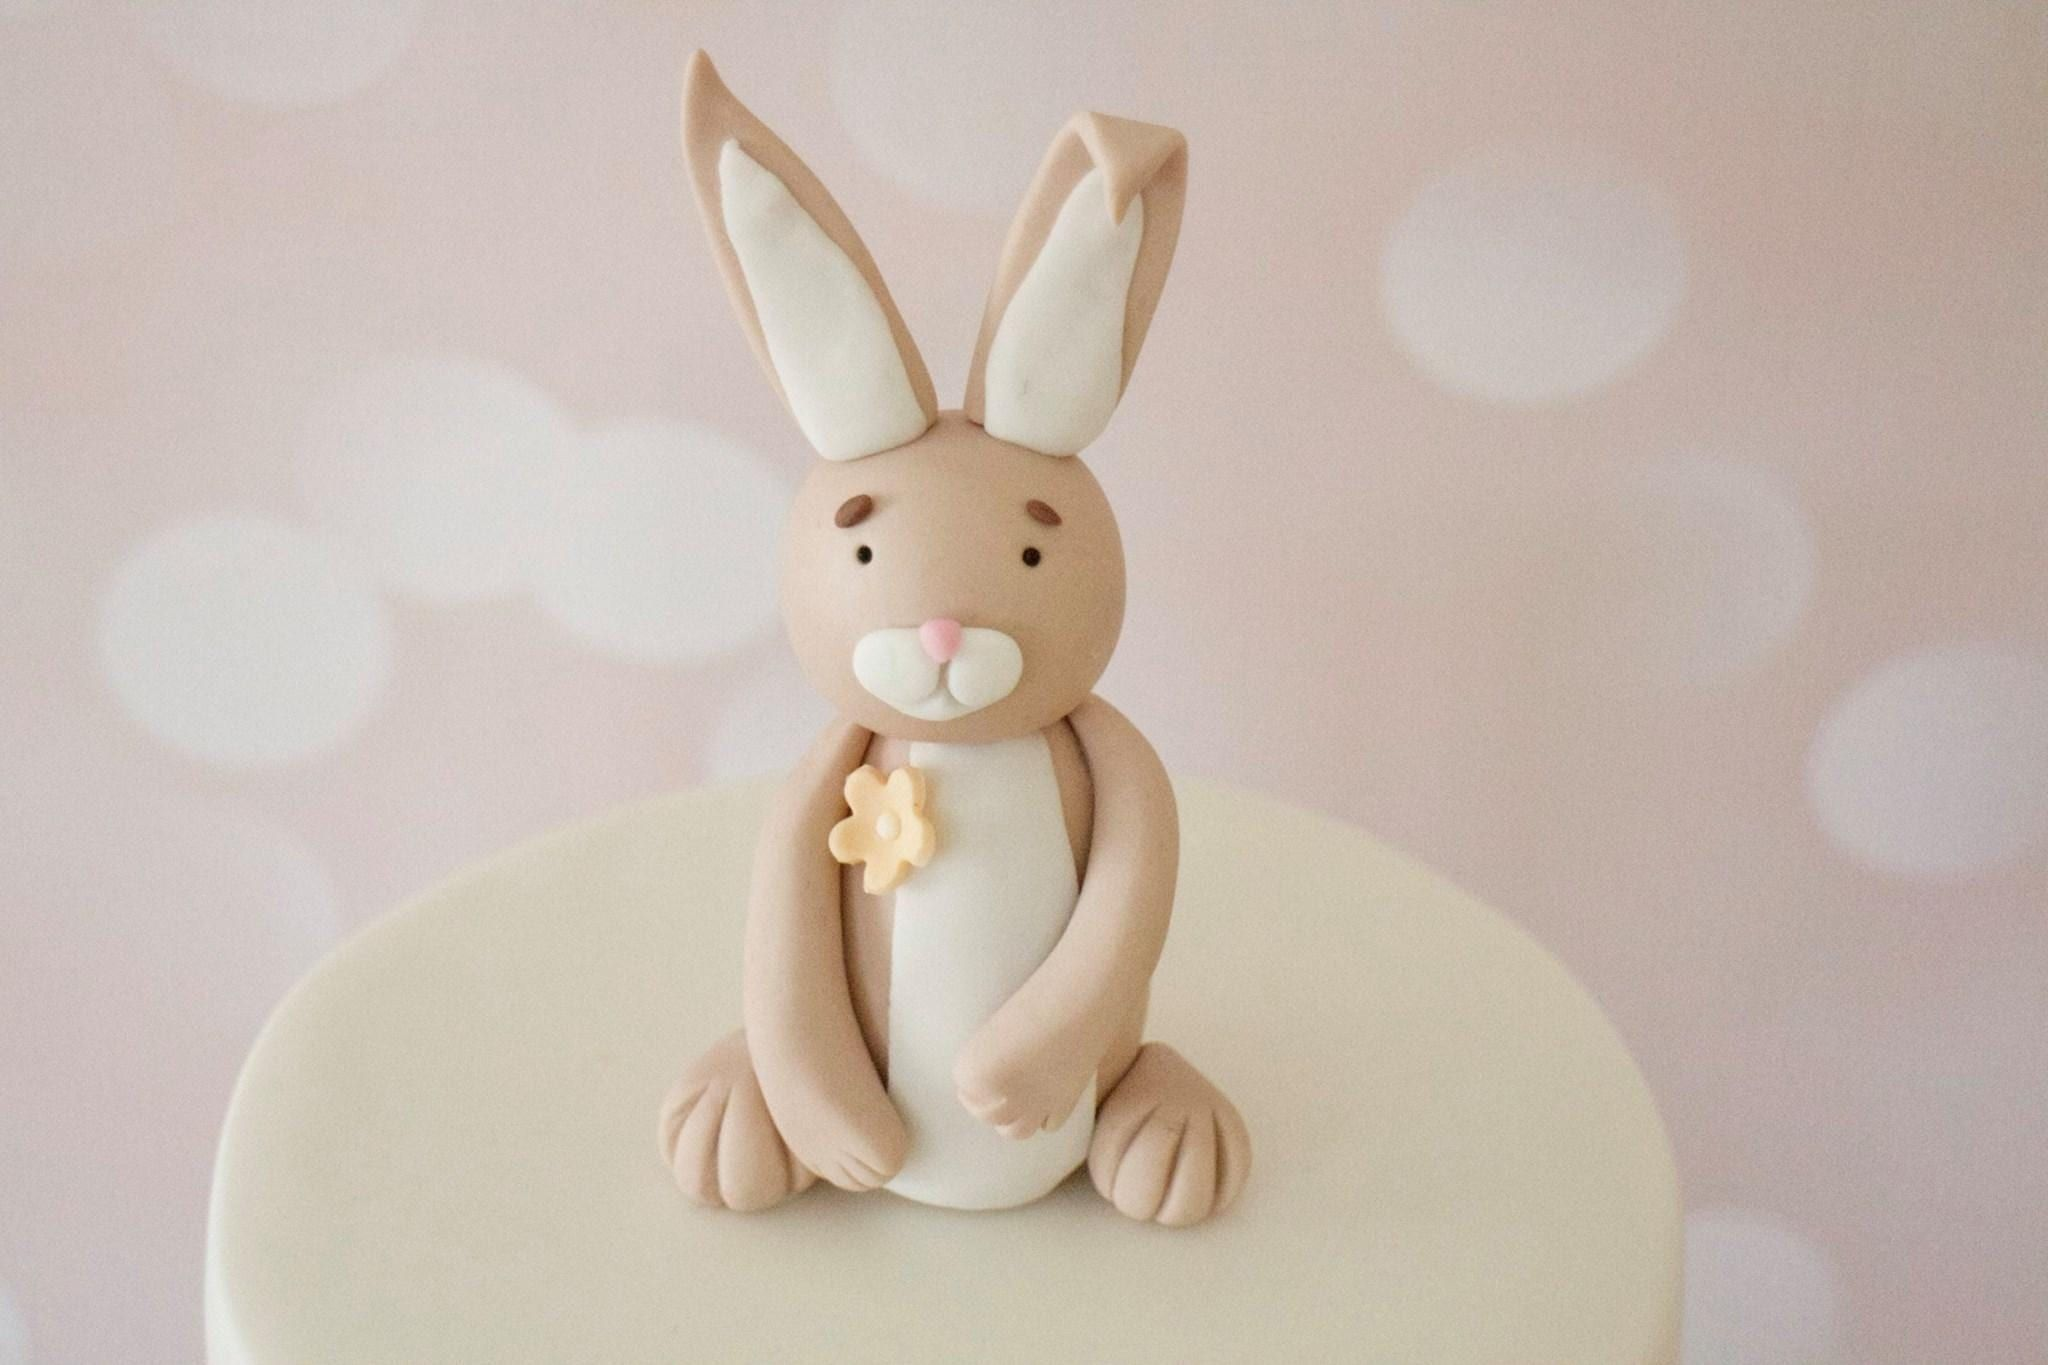 How to Make A Fondant Rabbit - photo tutorial from a UK baking blog